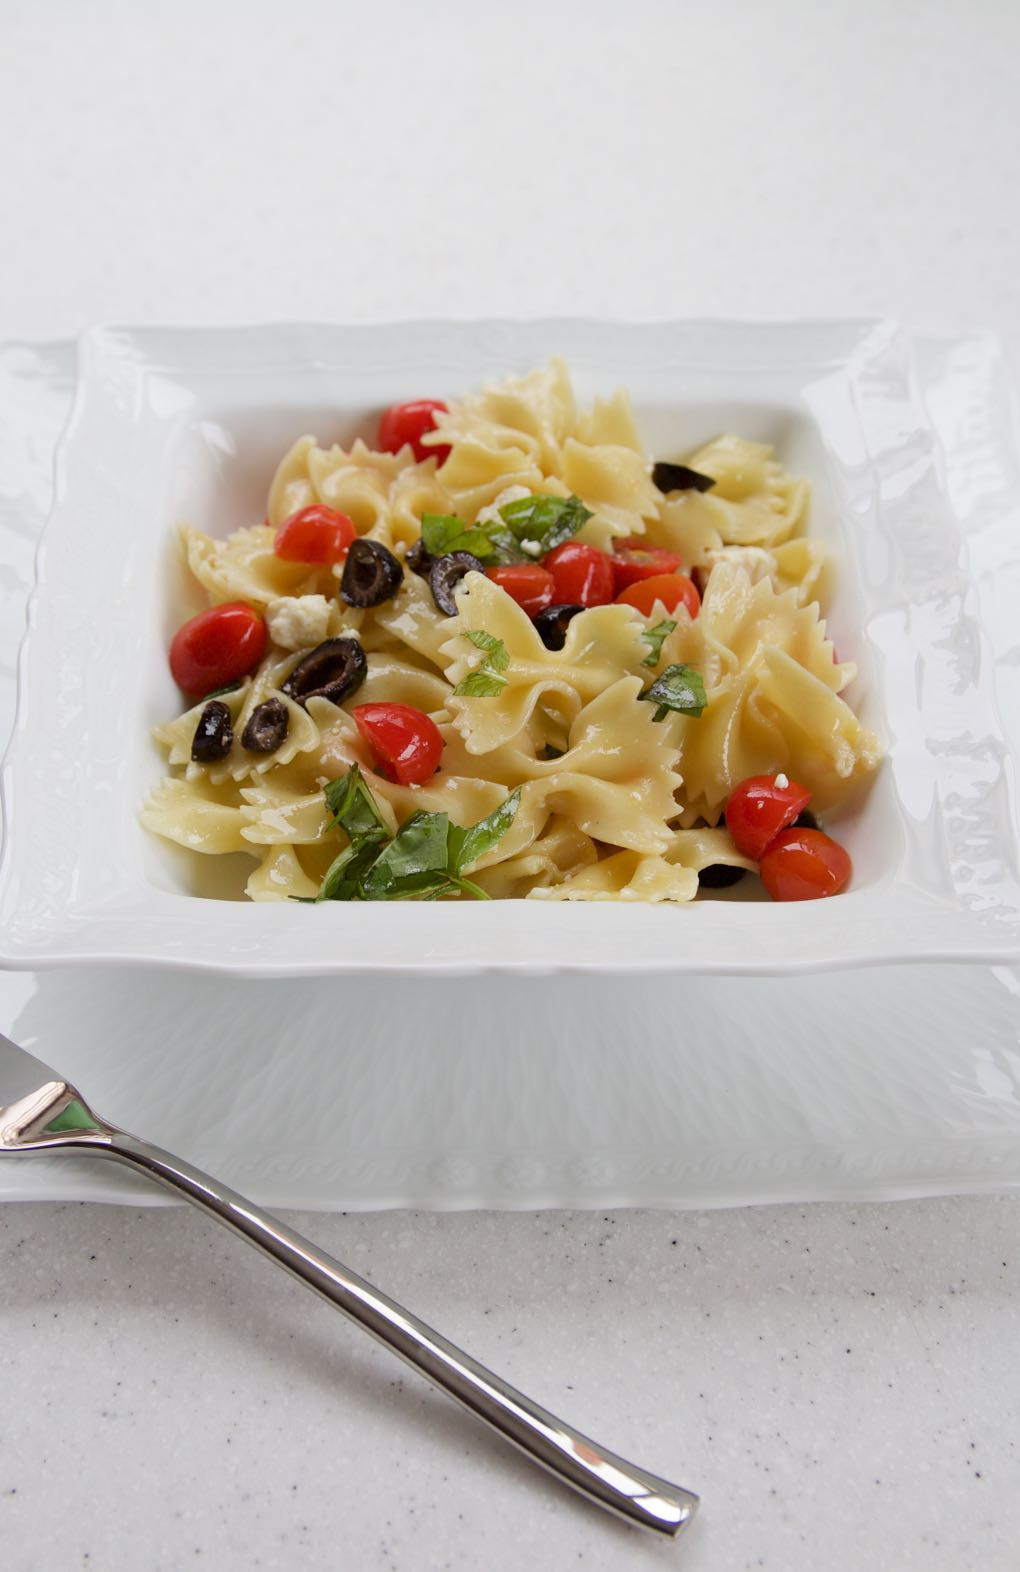 Pasta with cotija cheese and olives